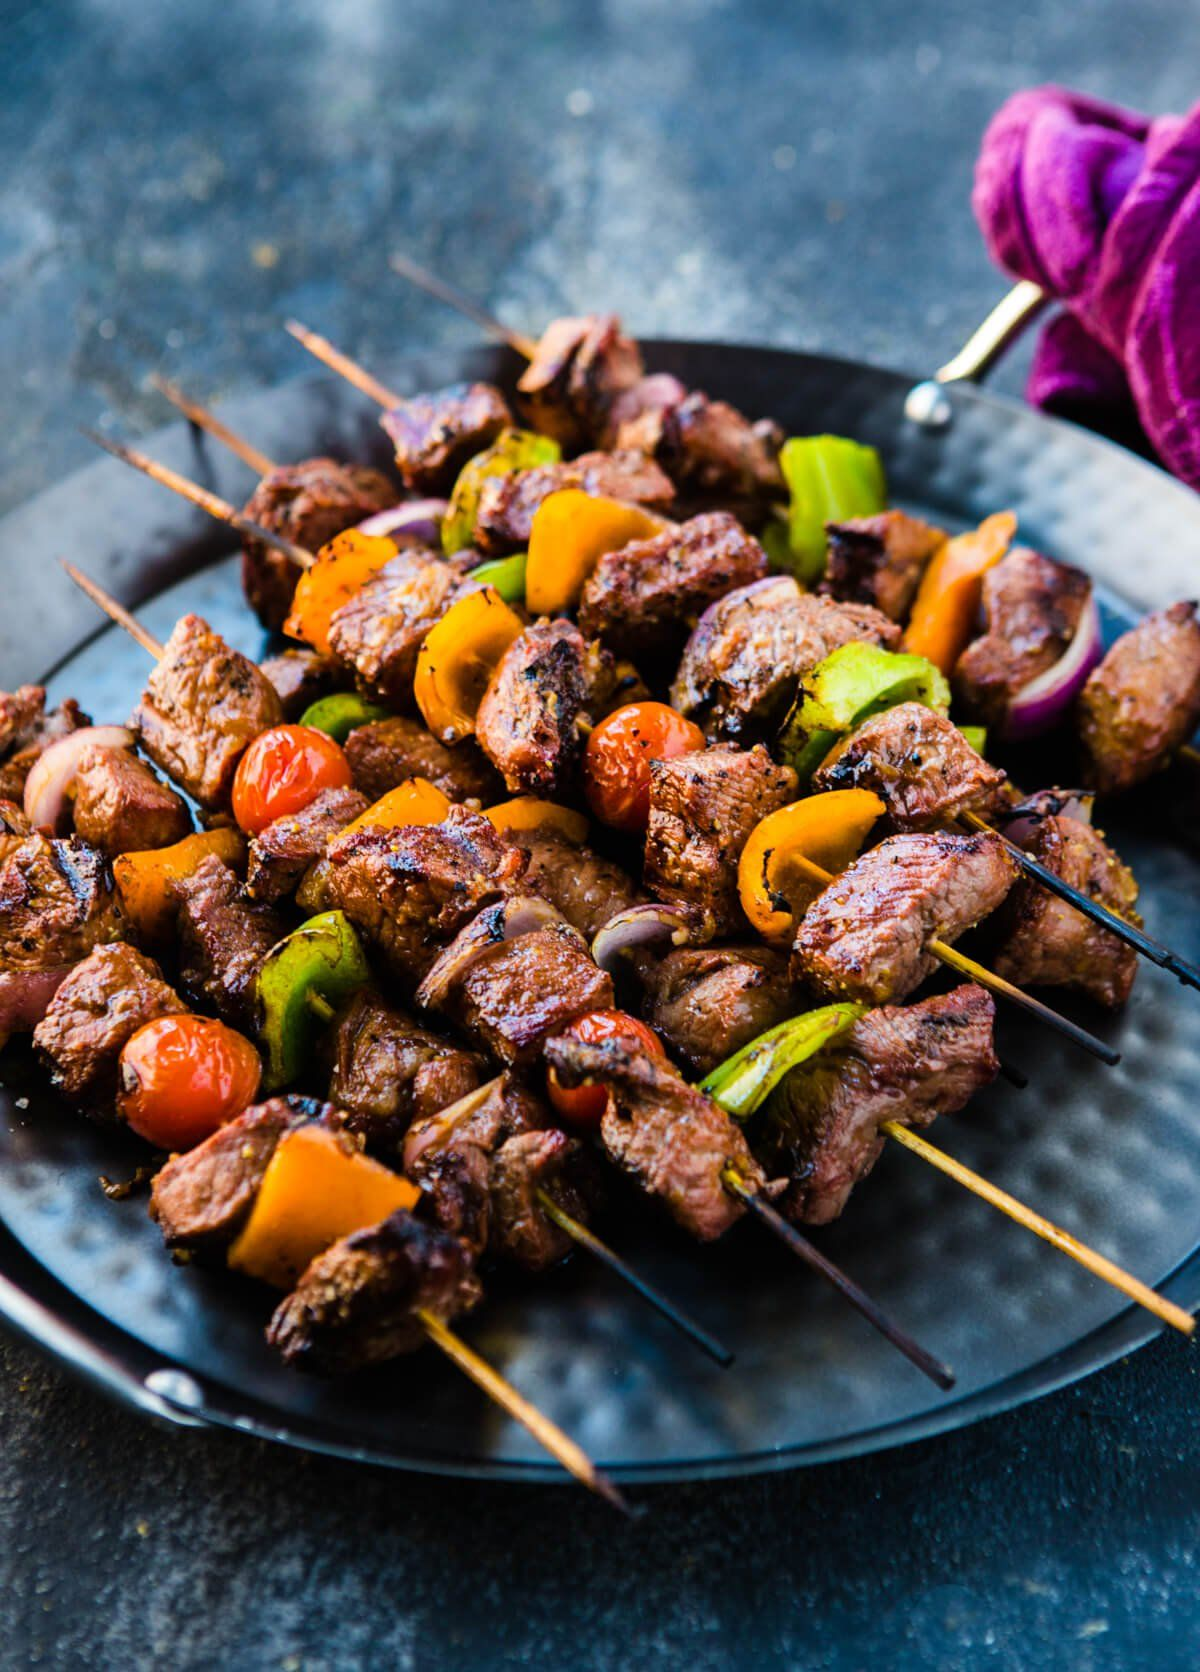 Heat Up The Grill This Weekend For These Flavorful Marinated Beef Shish Kabobs They Take Less Than 30 Minutes Fo Beef Shish Kabob Kabob Recipes Marinated Beef